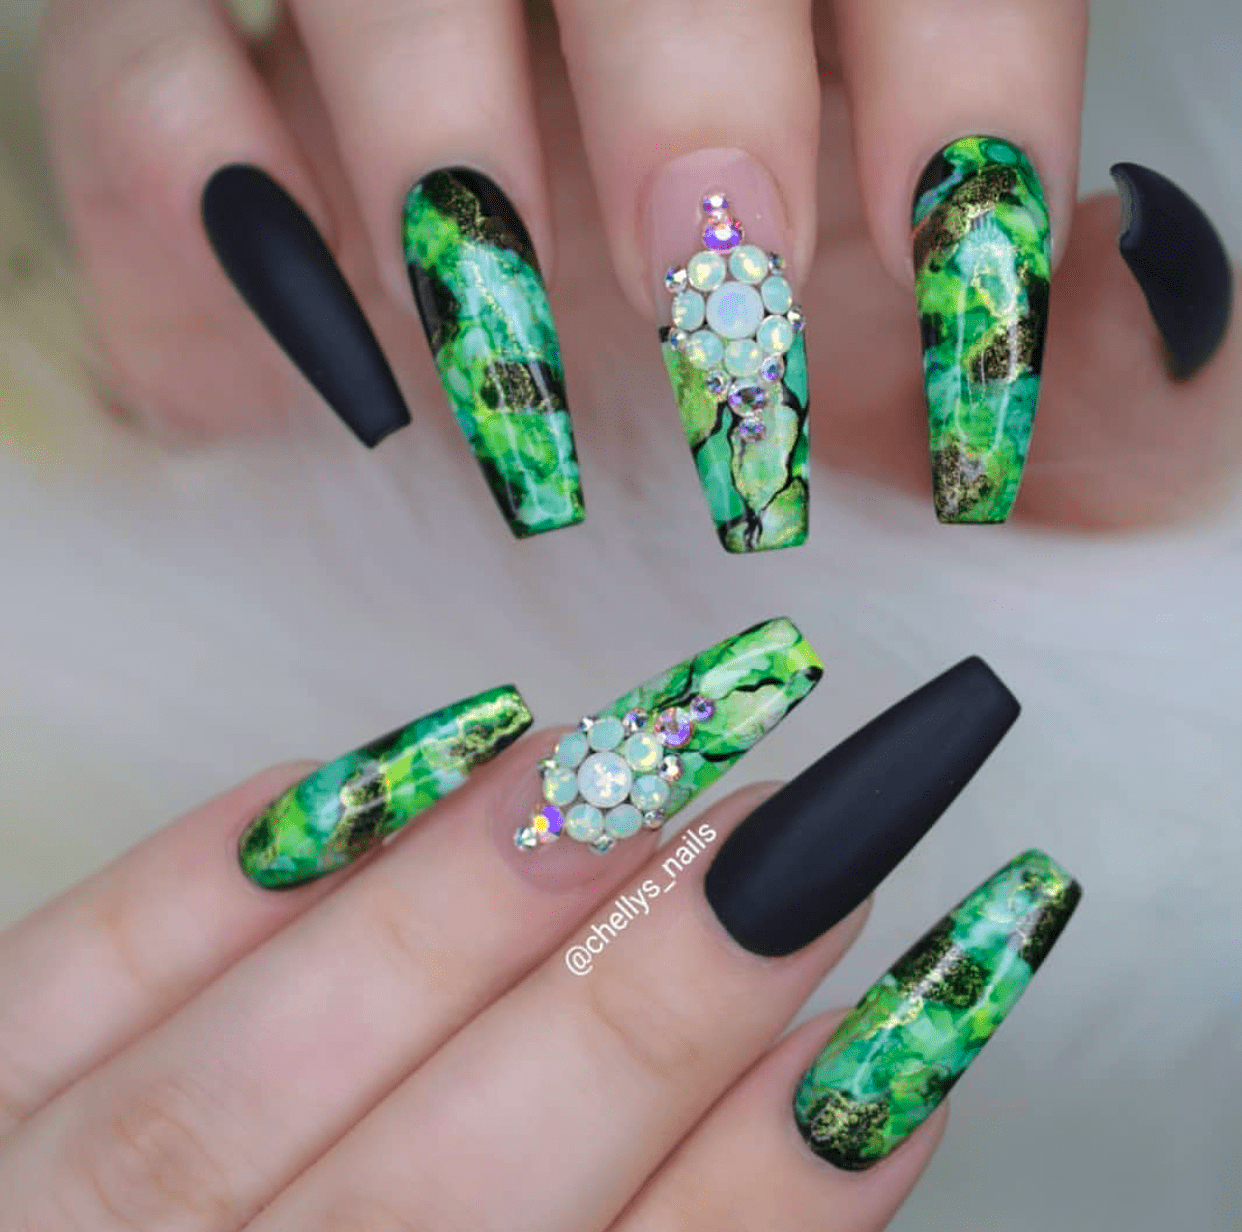 Fashion Beauty And Lifestyle Blogs: Money Green And Black Nail Designs Perfect For Summer